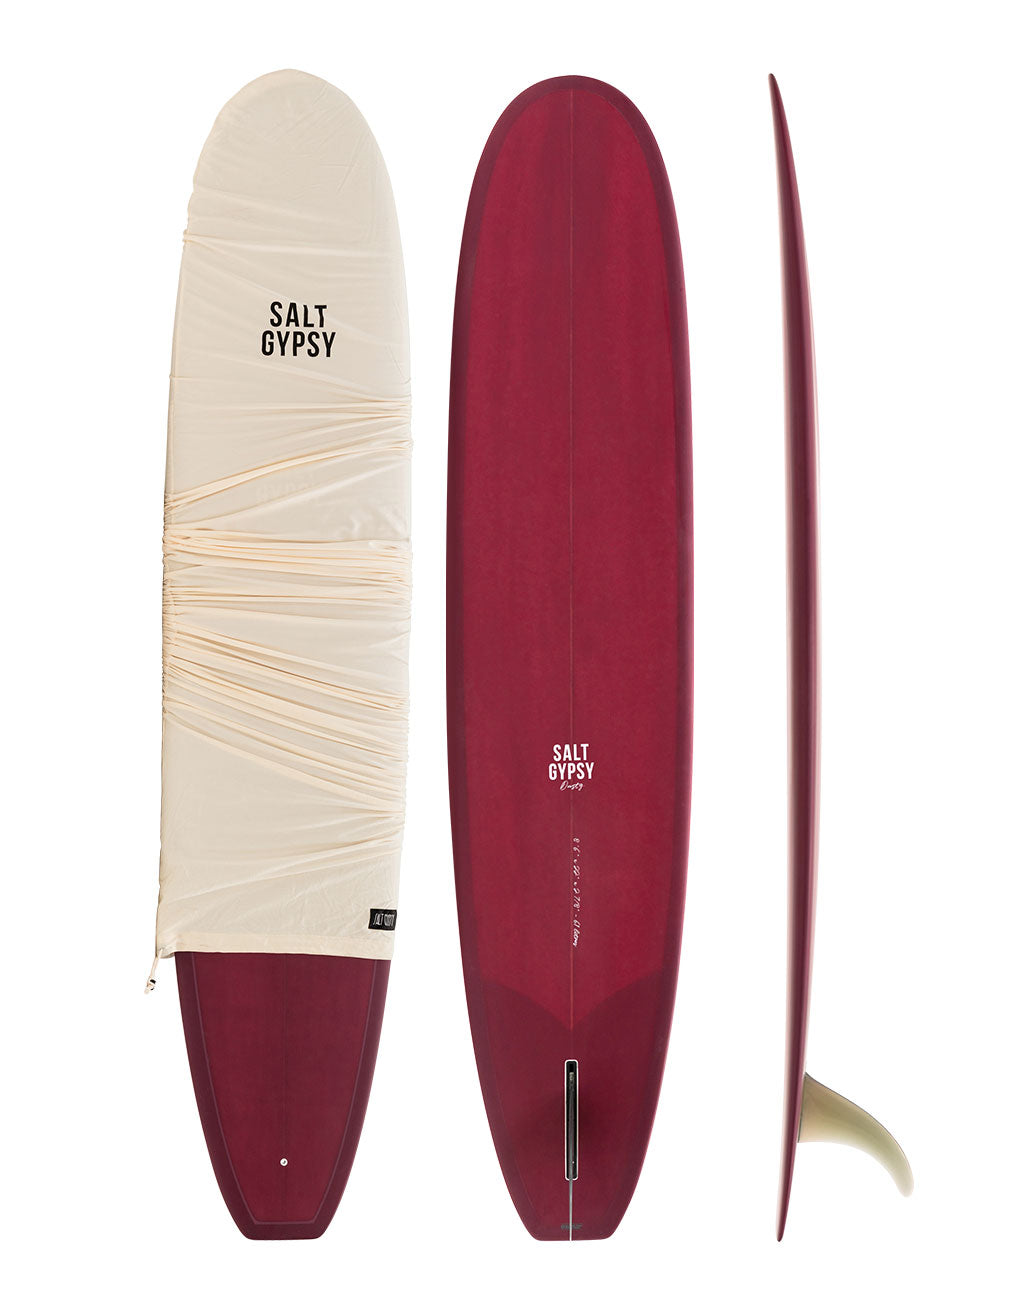 Salt Gypsy Dusty Retro PU Longboard Surfboard